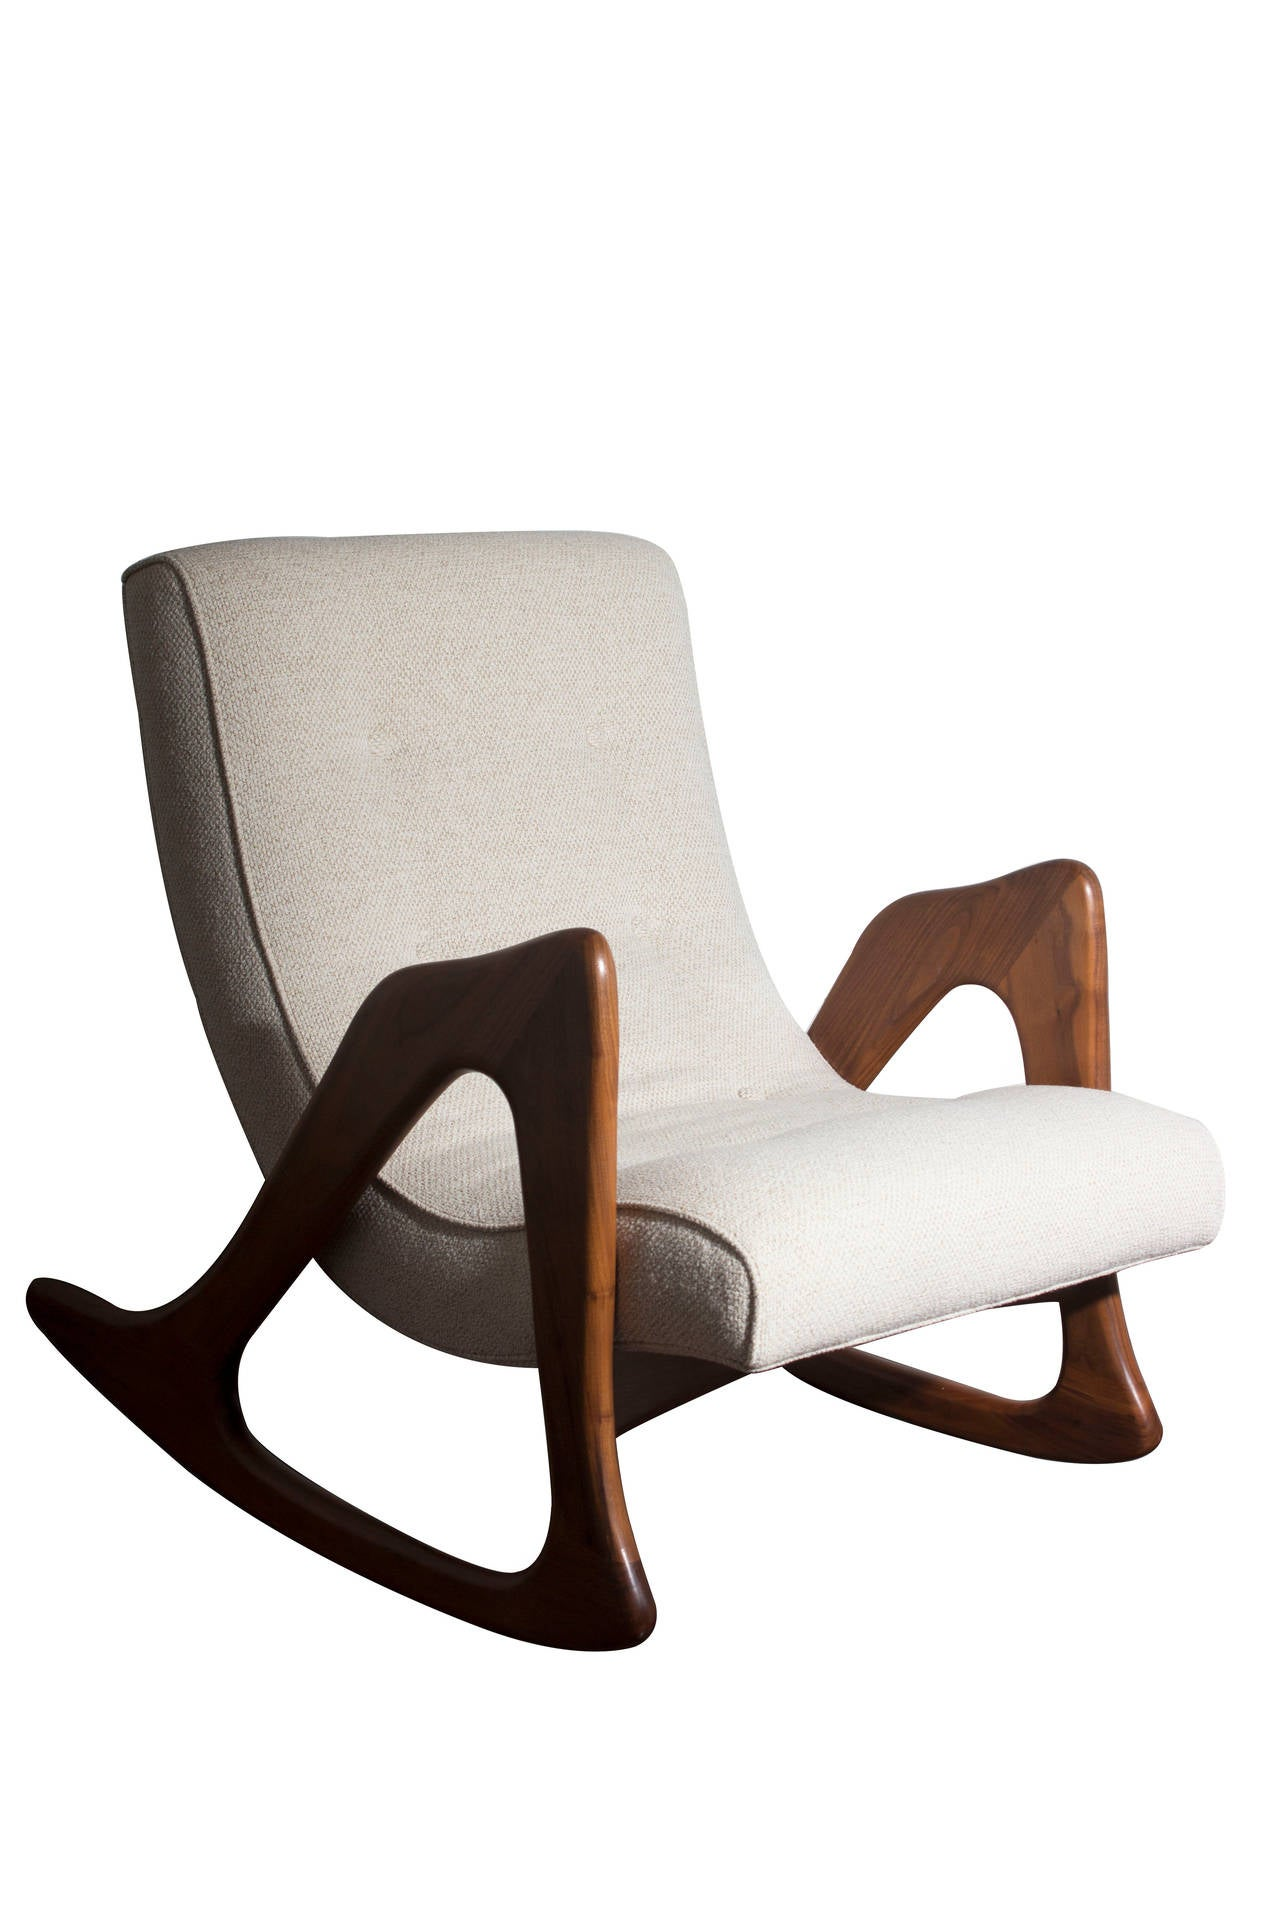 adrian pearsall rocking chair wedding covers hawaii sculptural pair of rocker chairs at 1stdibs